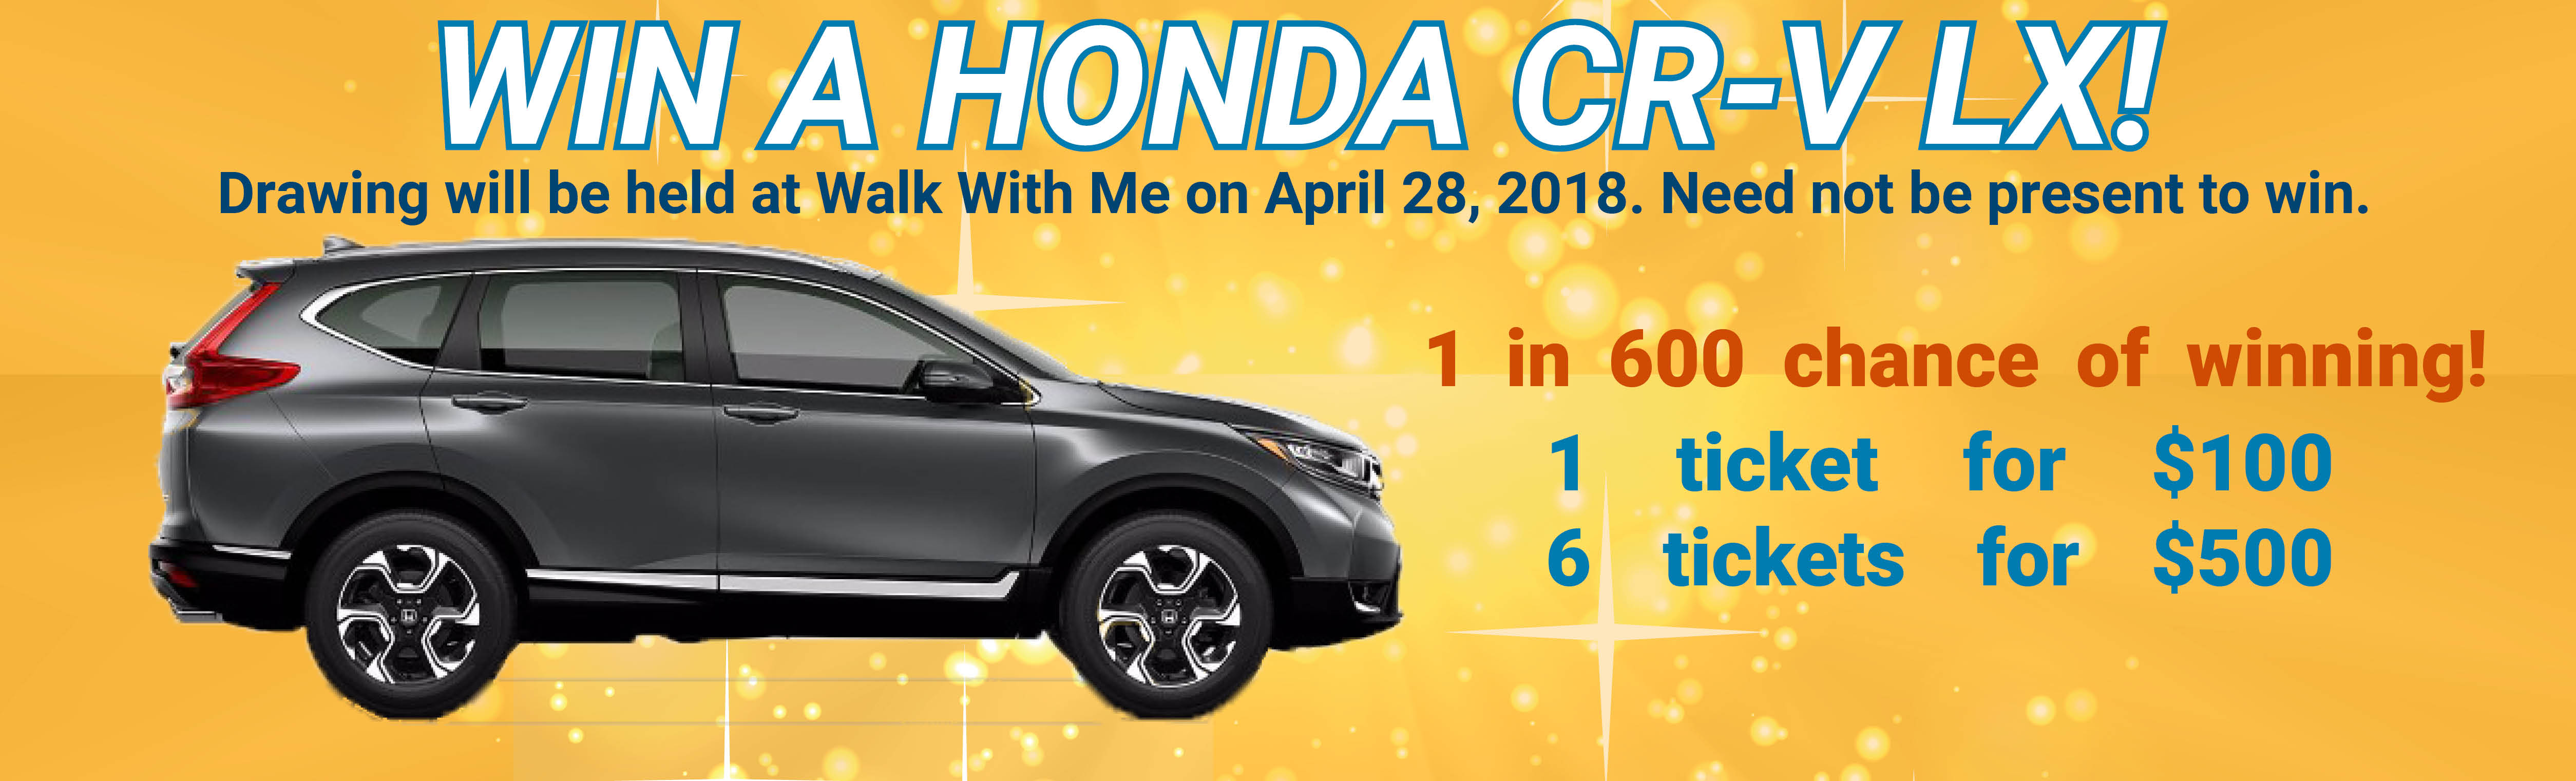 Win a Honda CR-V LX courtesy of John Eagle Honda! Click here for rules & to purchase your lucky raffle tickets!